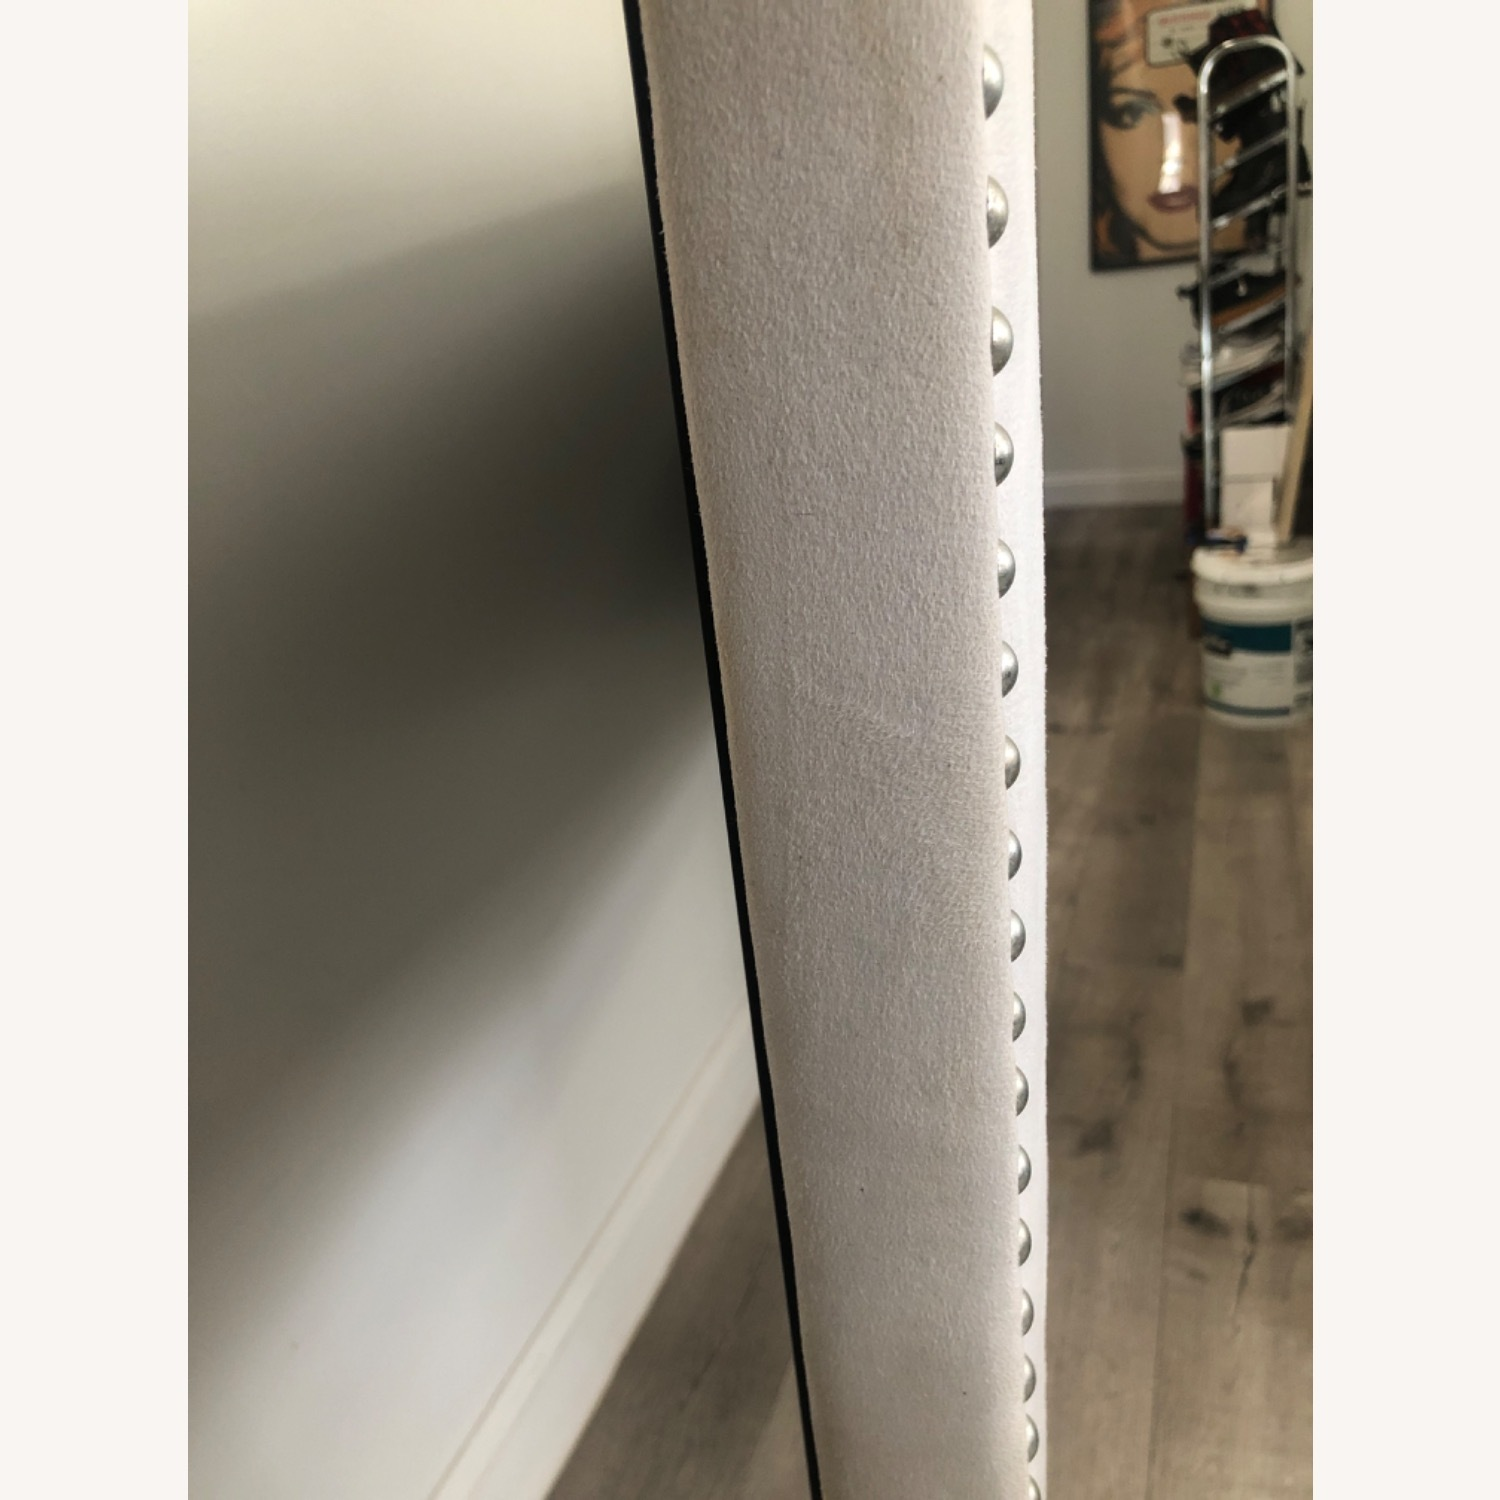 White Microsuede Headboard with Silver Rivets - image-2